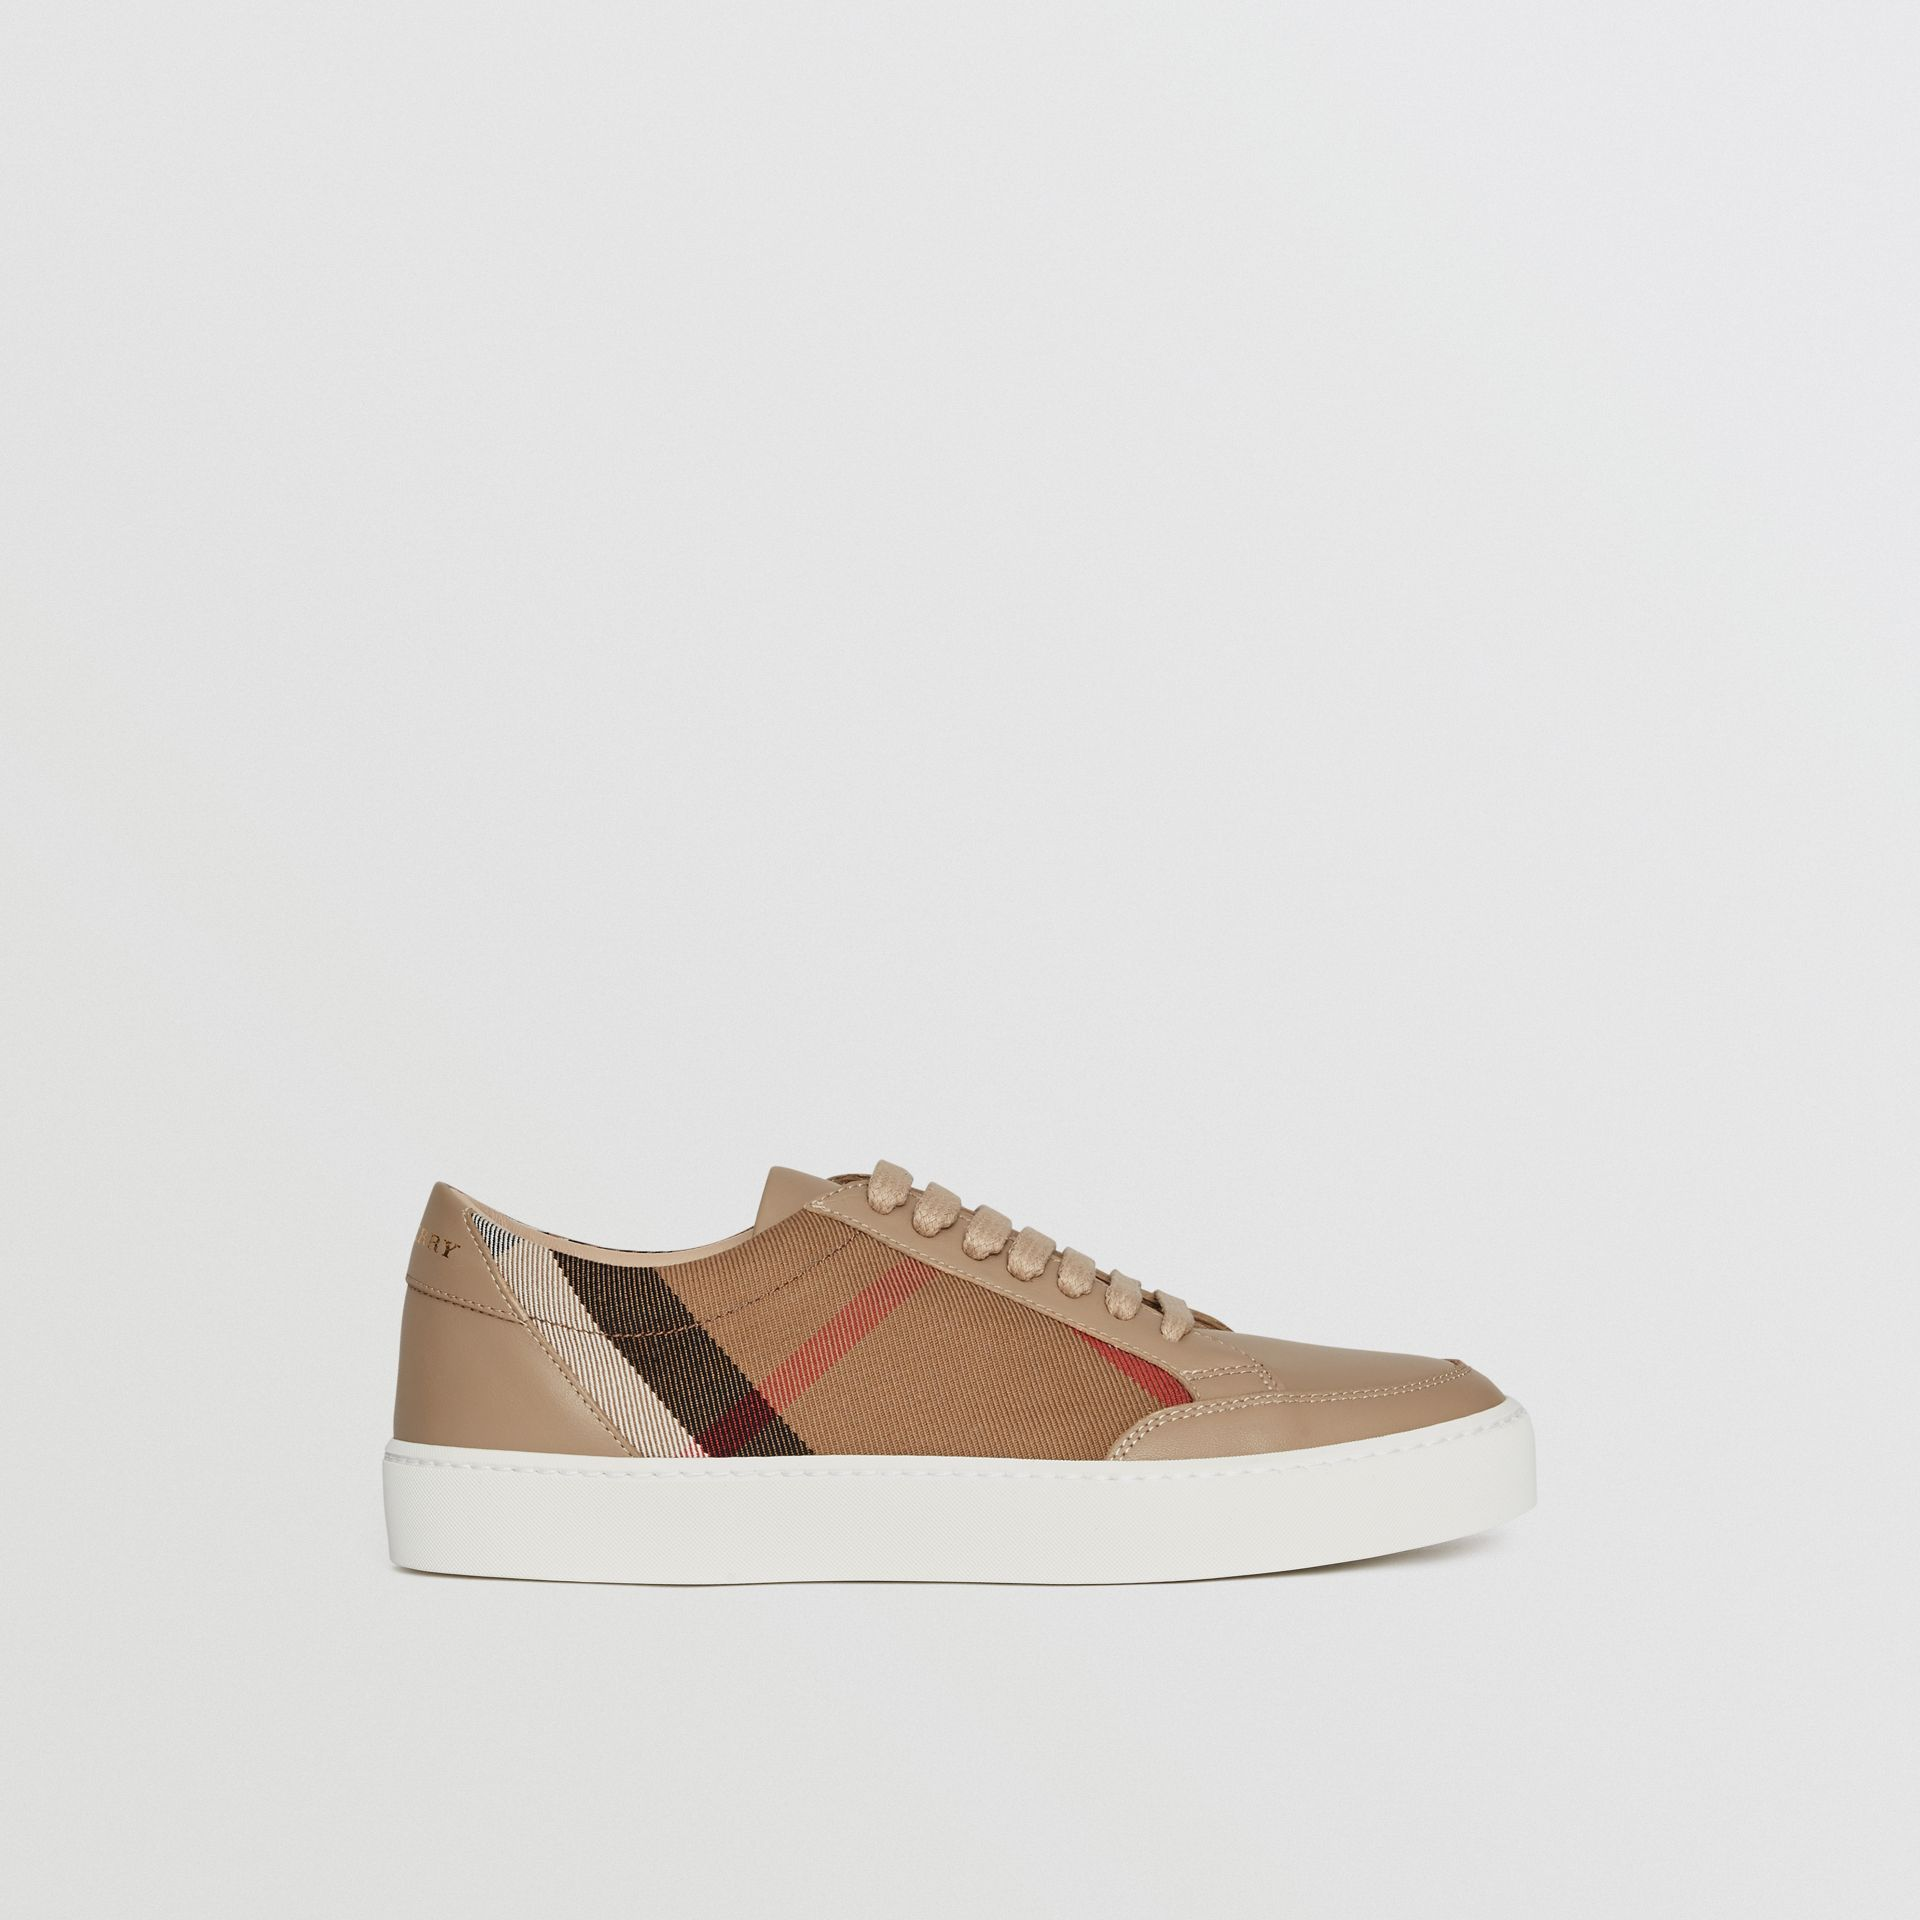 Check Detail Leather Sneakers in House Check/ Nude - Women | Burberry Hong Kong S.A.R - gallery image 5